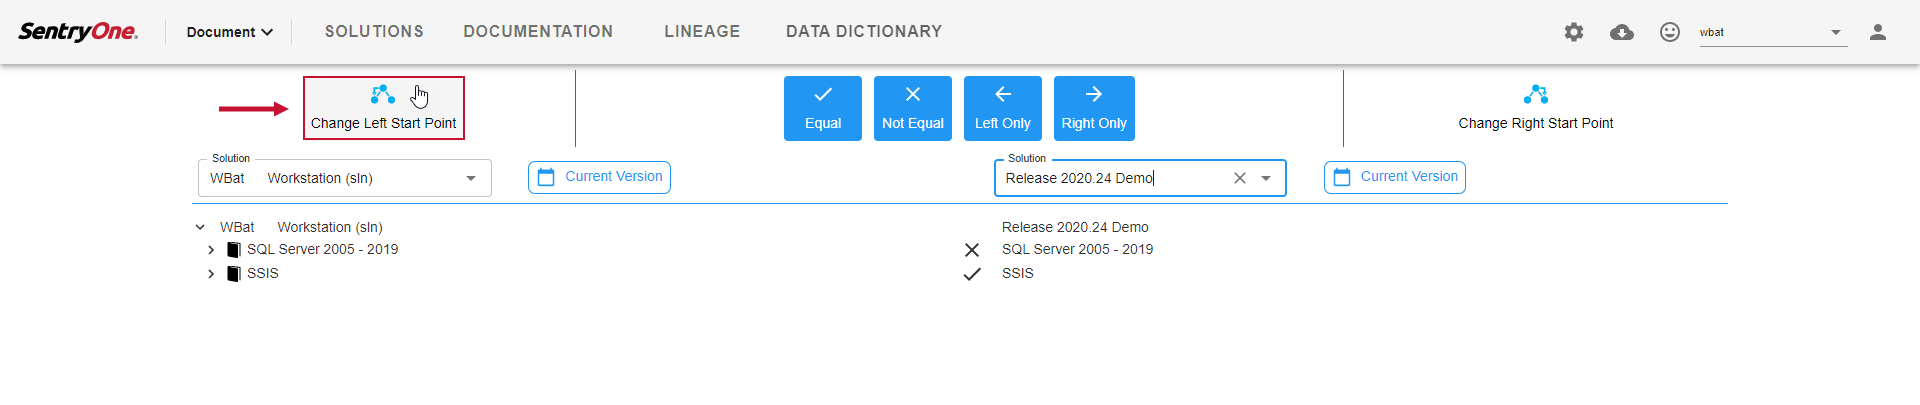 SentryOne Document Solution Comparison Change Left Start Point